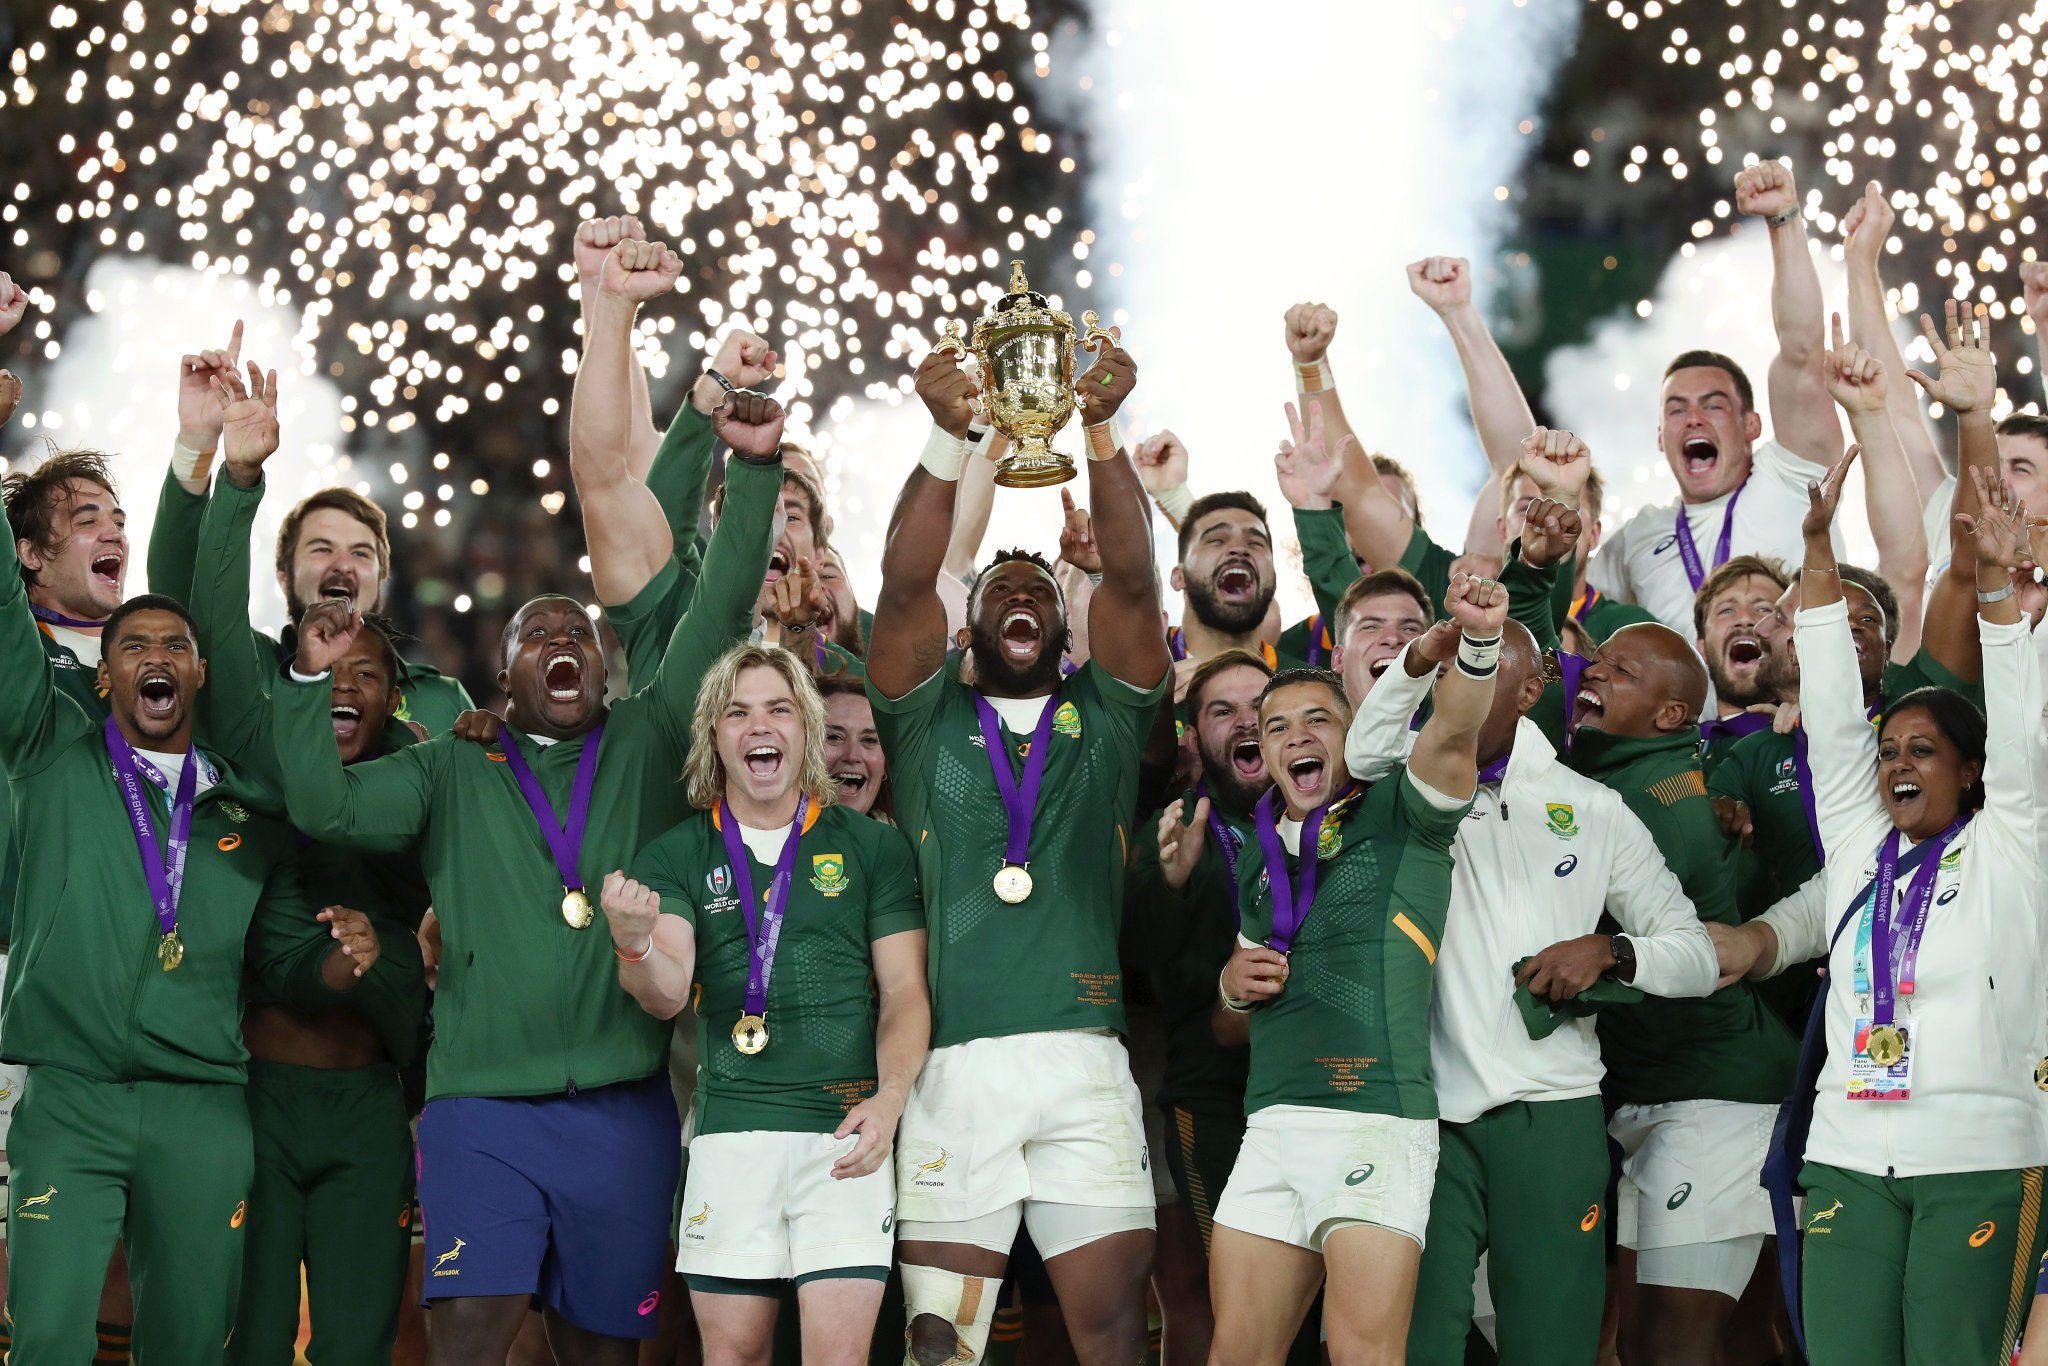 Free Gautrain rides to welcome home the Bokke